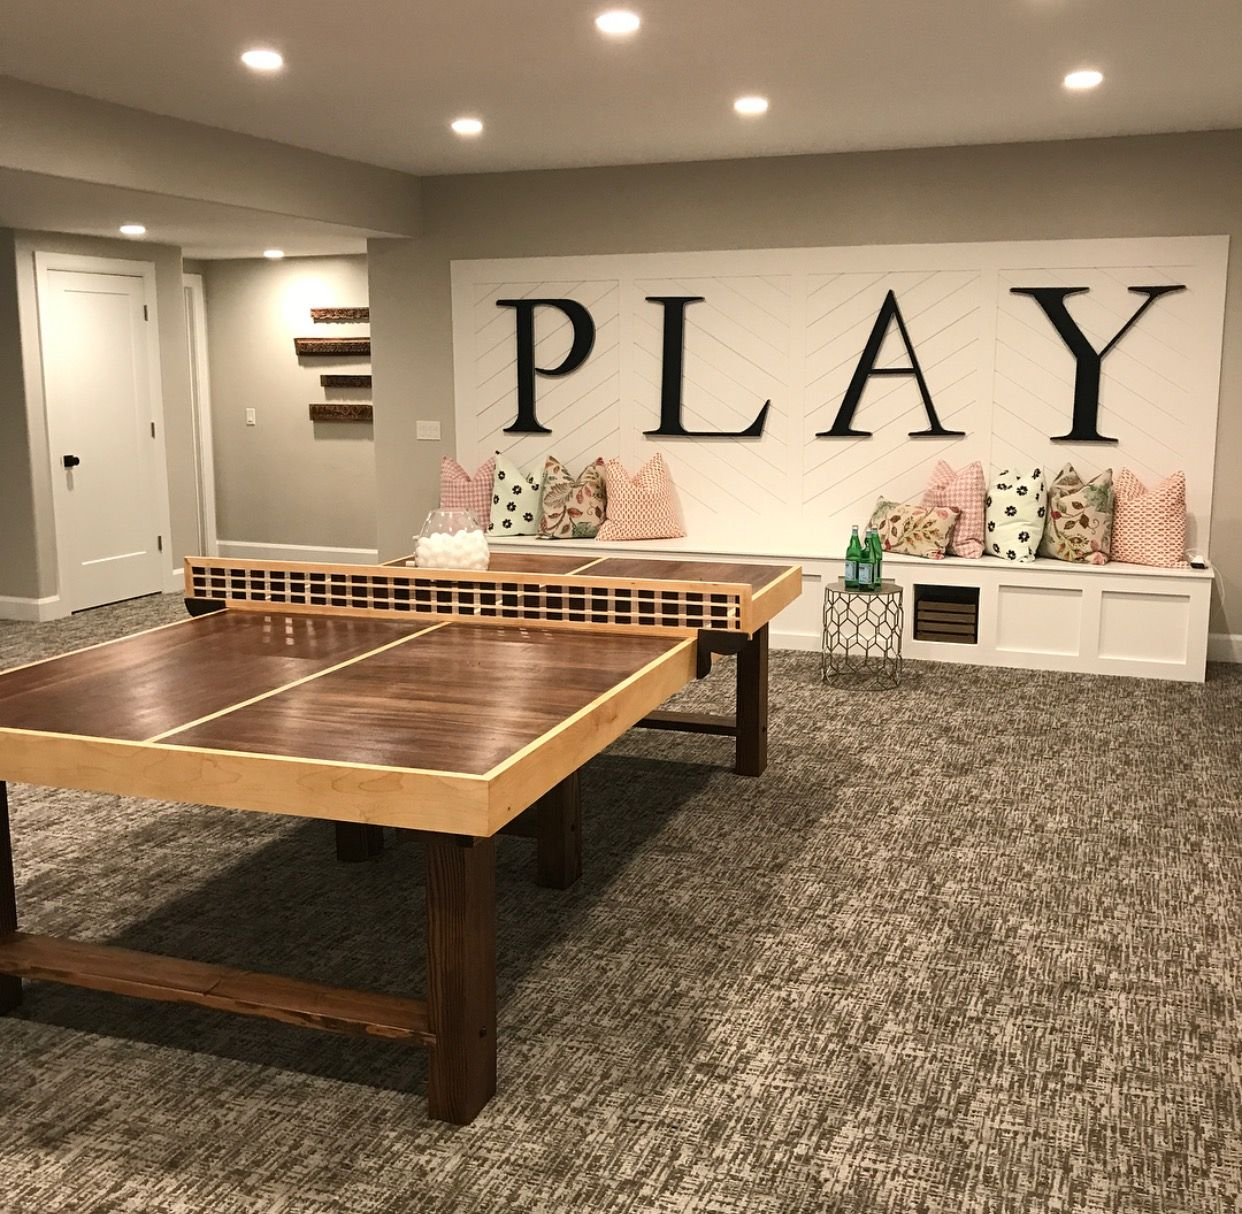 20 Amazing Unfinished Basement Ideas You Should Try | Big letters ...